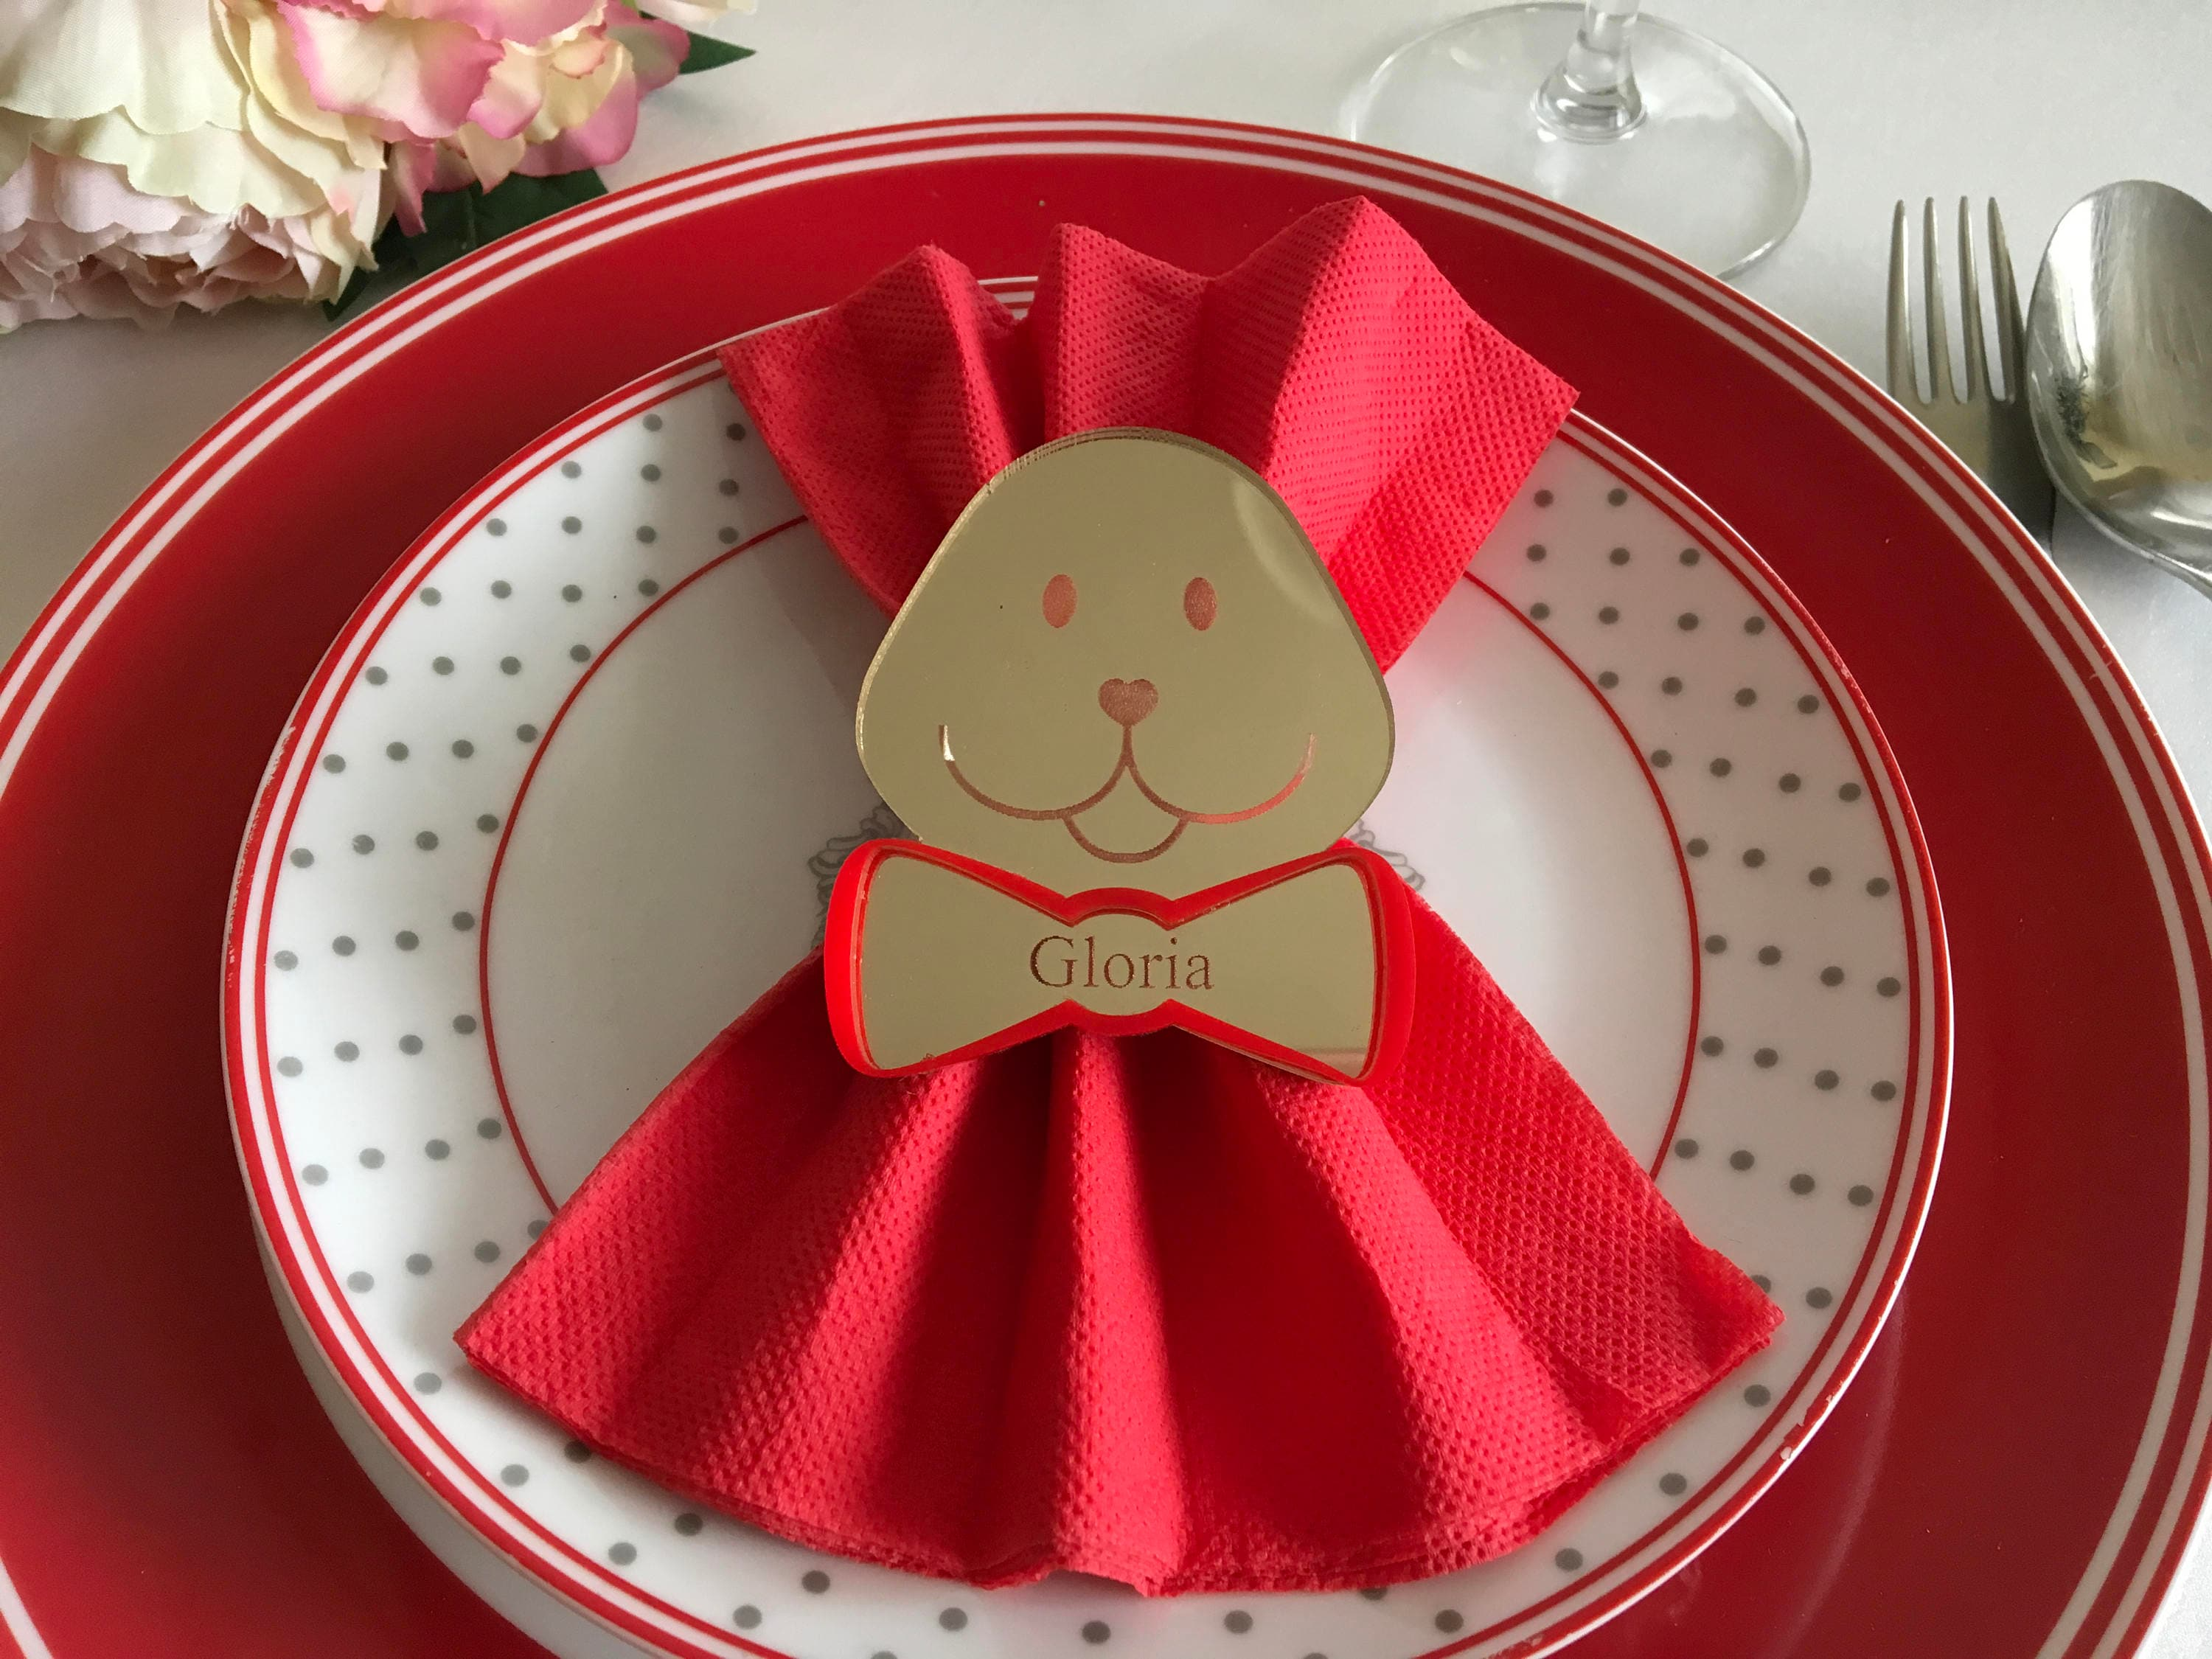 Personalized Napkin Ring Holders Custom Engraved Name Gold Acrylic Teddy Bear 1st Birthday Party Favors Kids Napkin Rings Baby Shower Decor